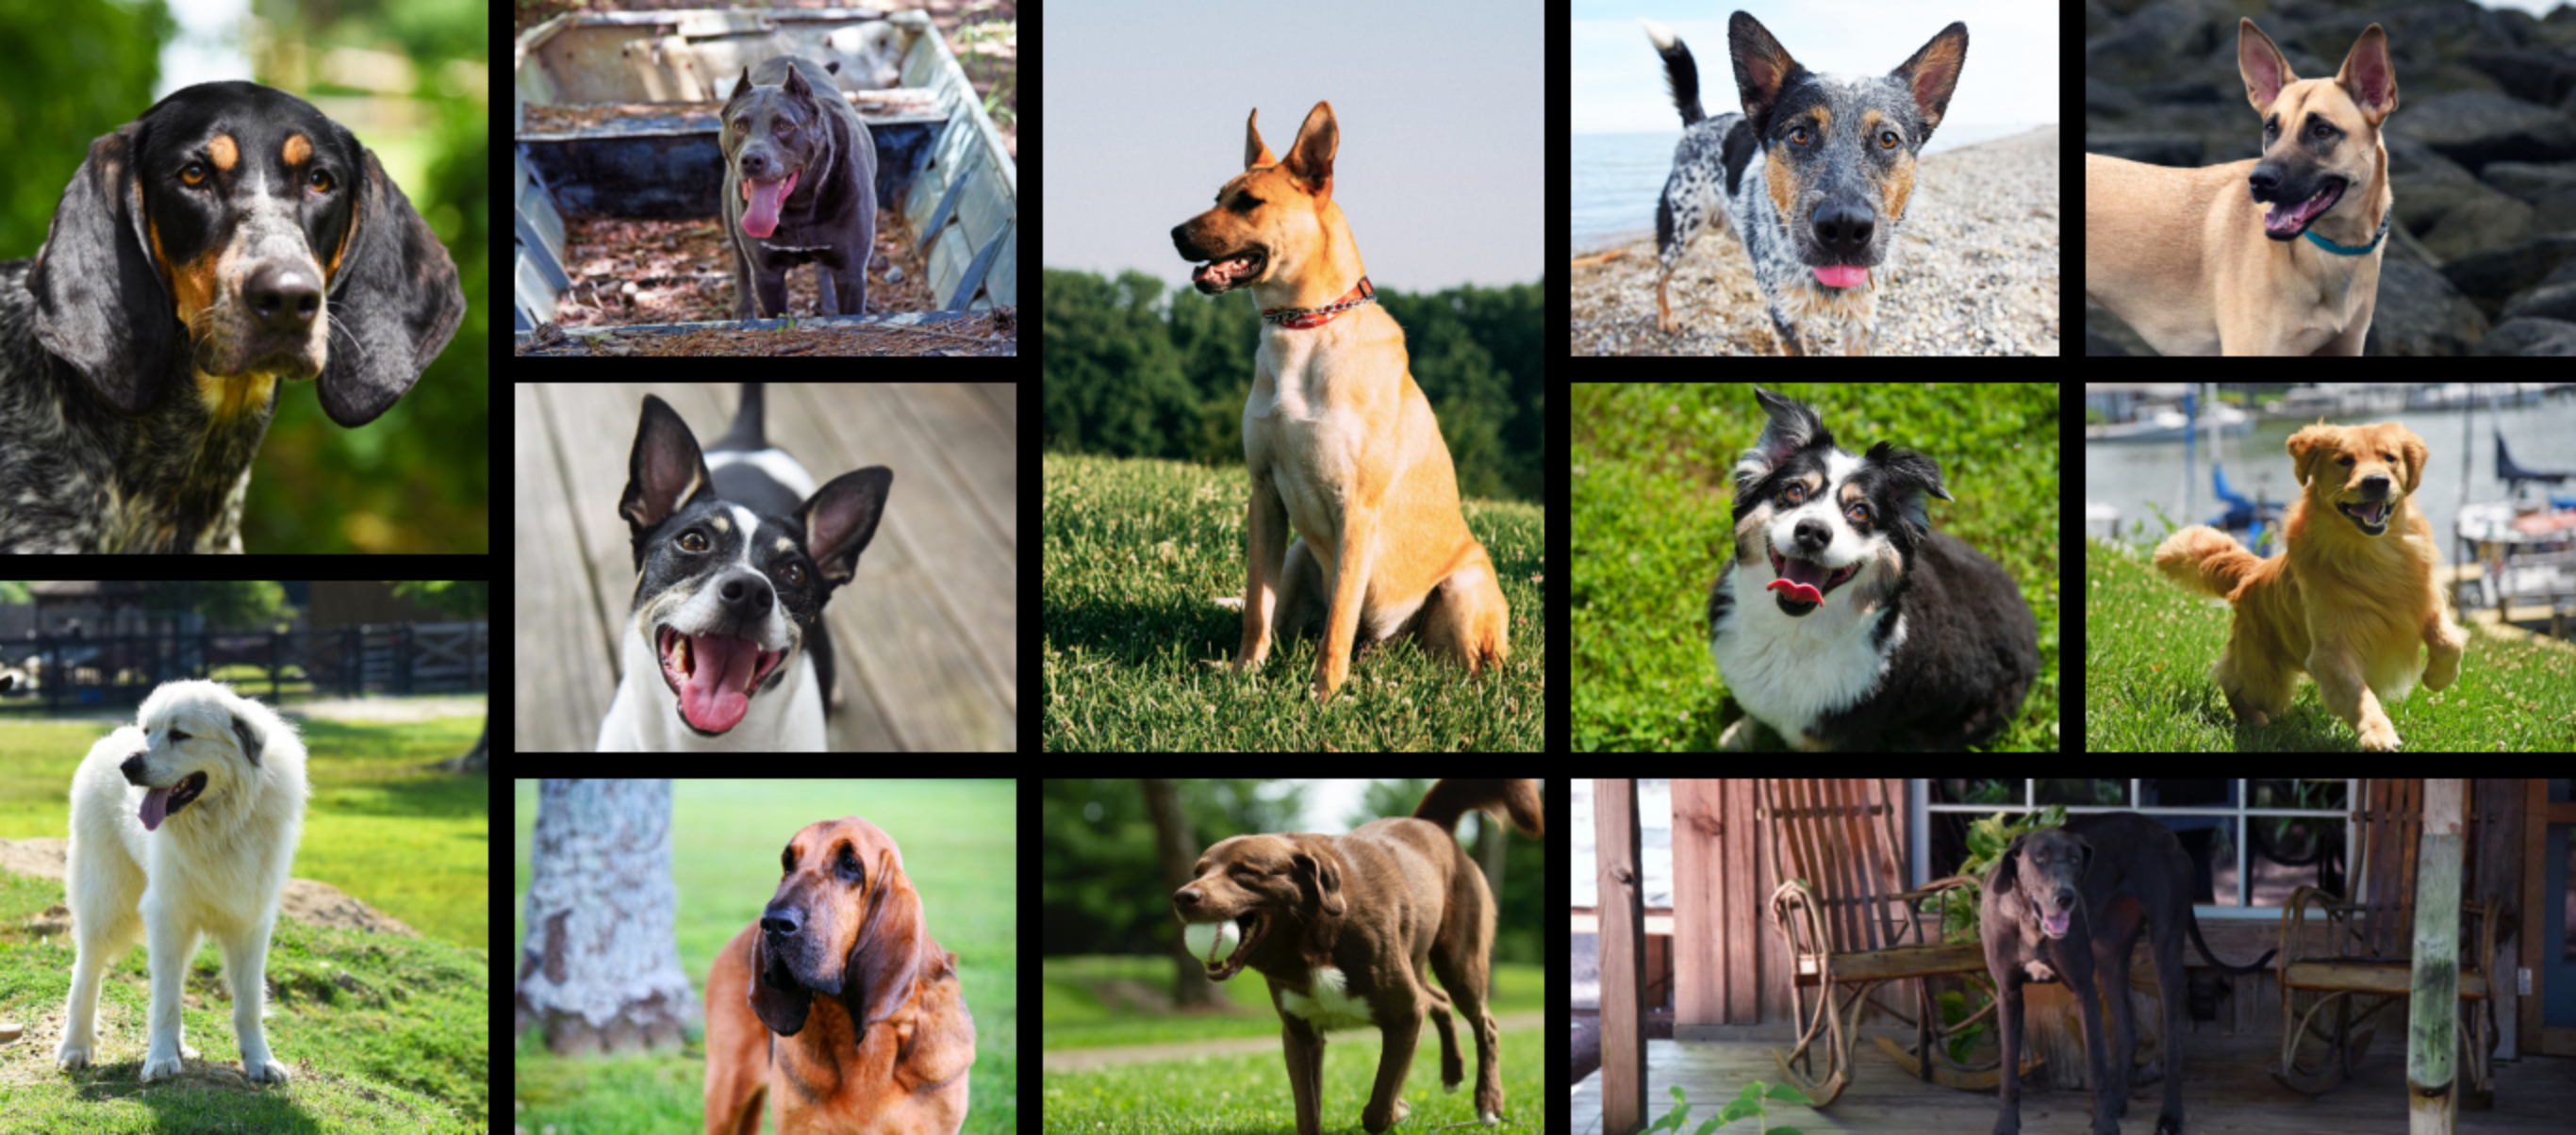 Early Times Whiskey All American Dogs contest winners. All American dogs are shown in a collage.